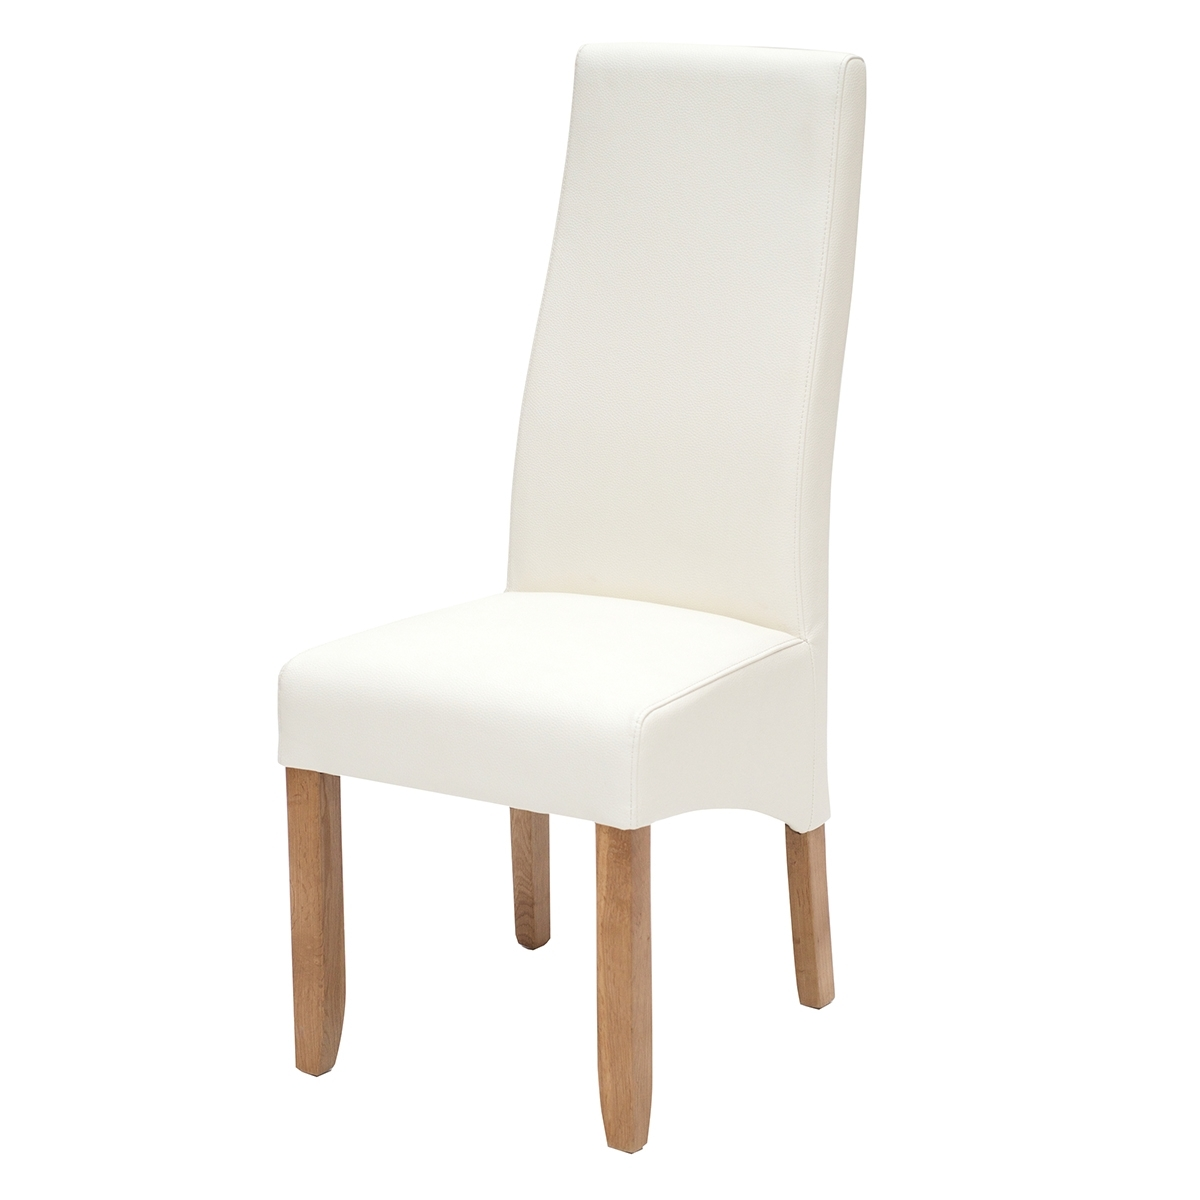 Wavey Dining Chair – Scs Endurance Illusion White – Willis & Gambier For Widely Used Scs Dining Furniture (View 23 of 25)